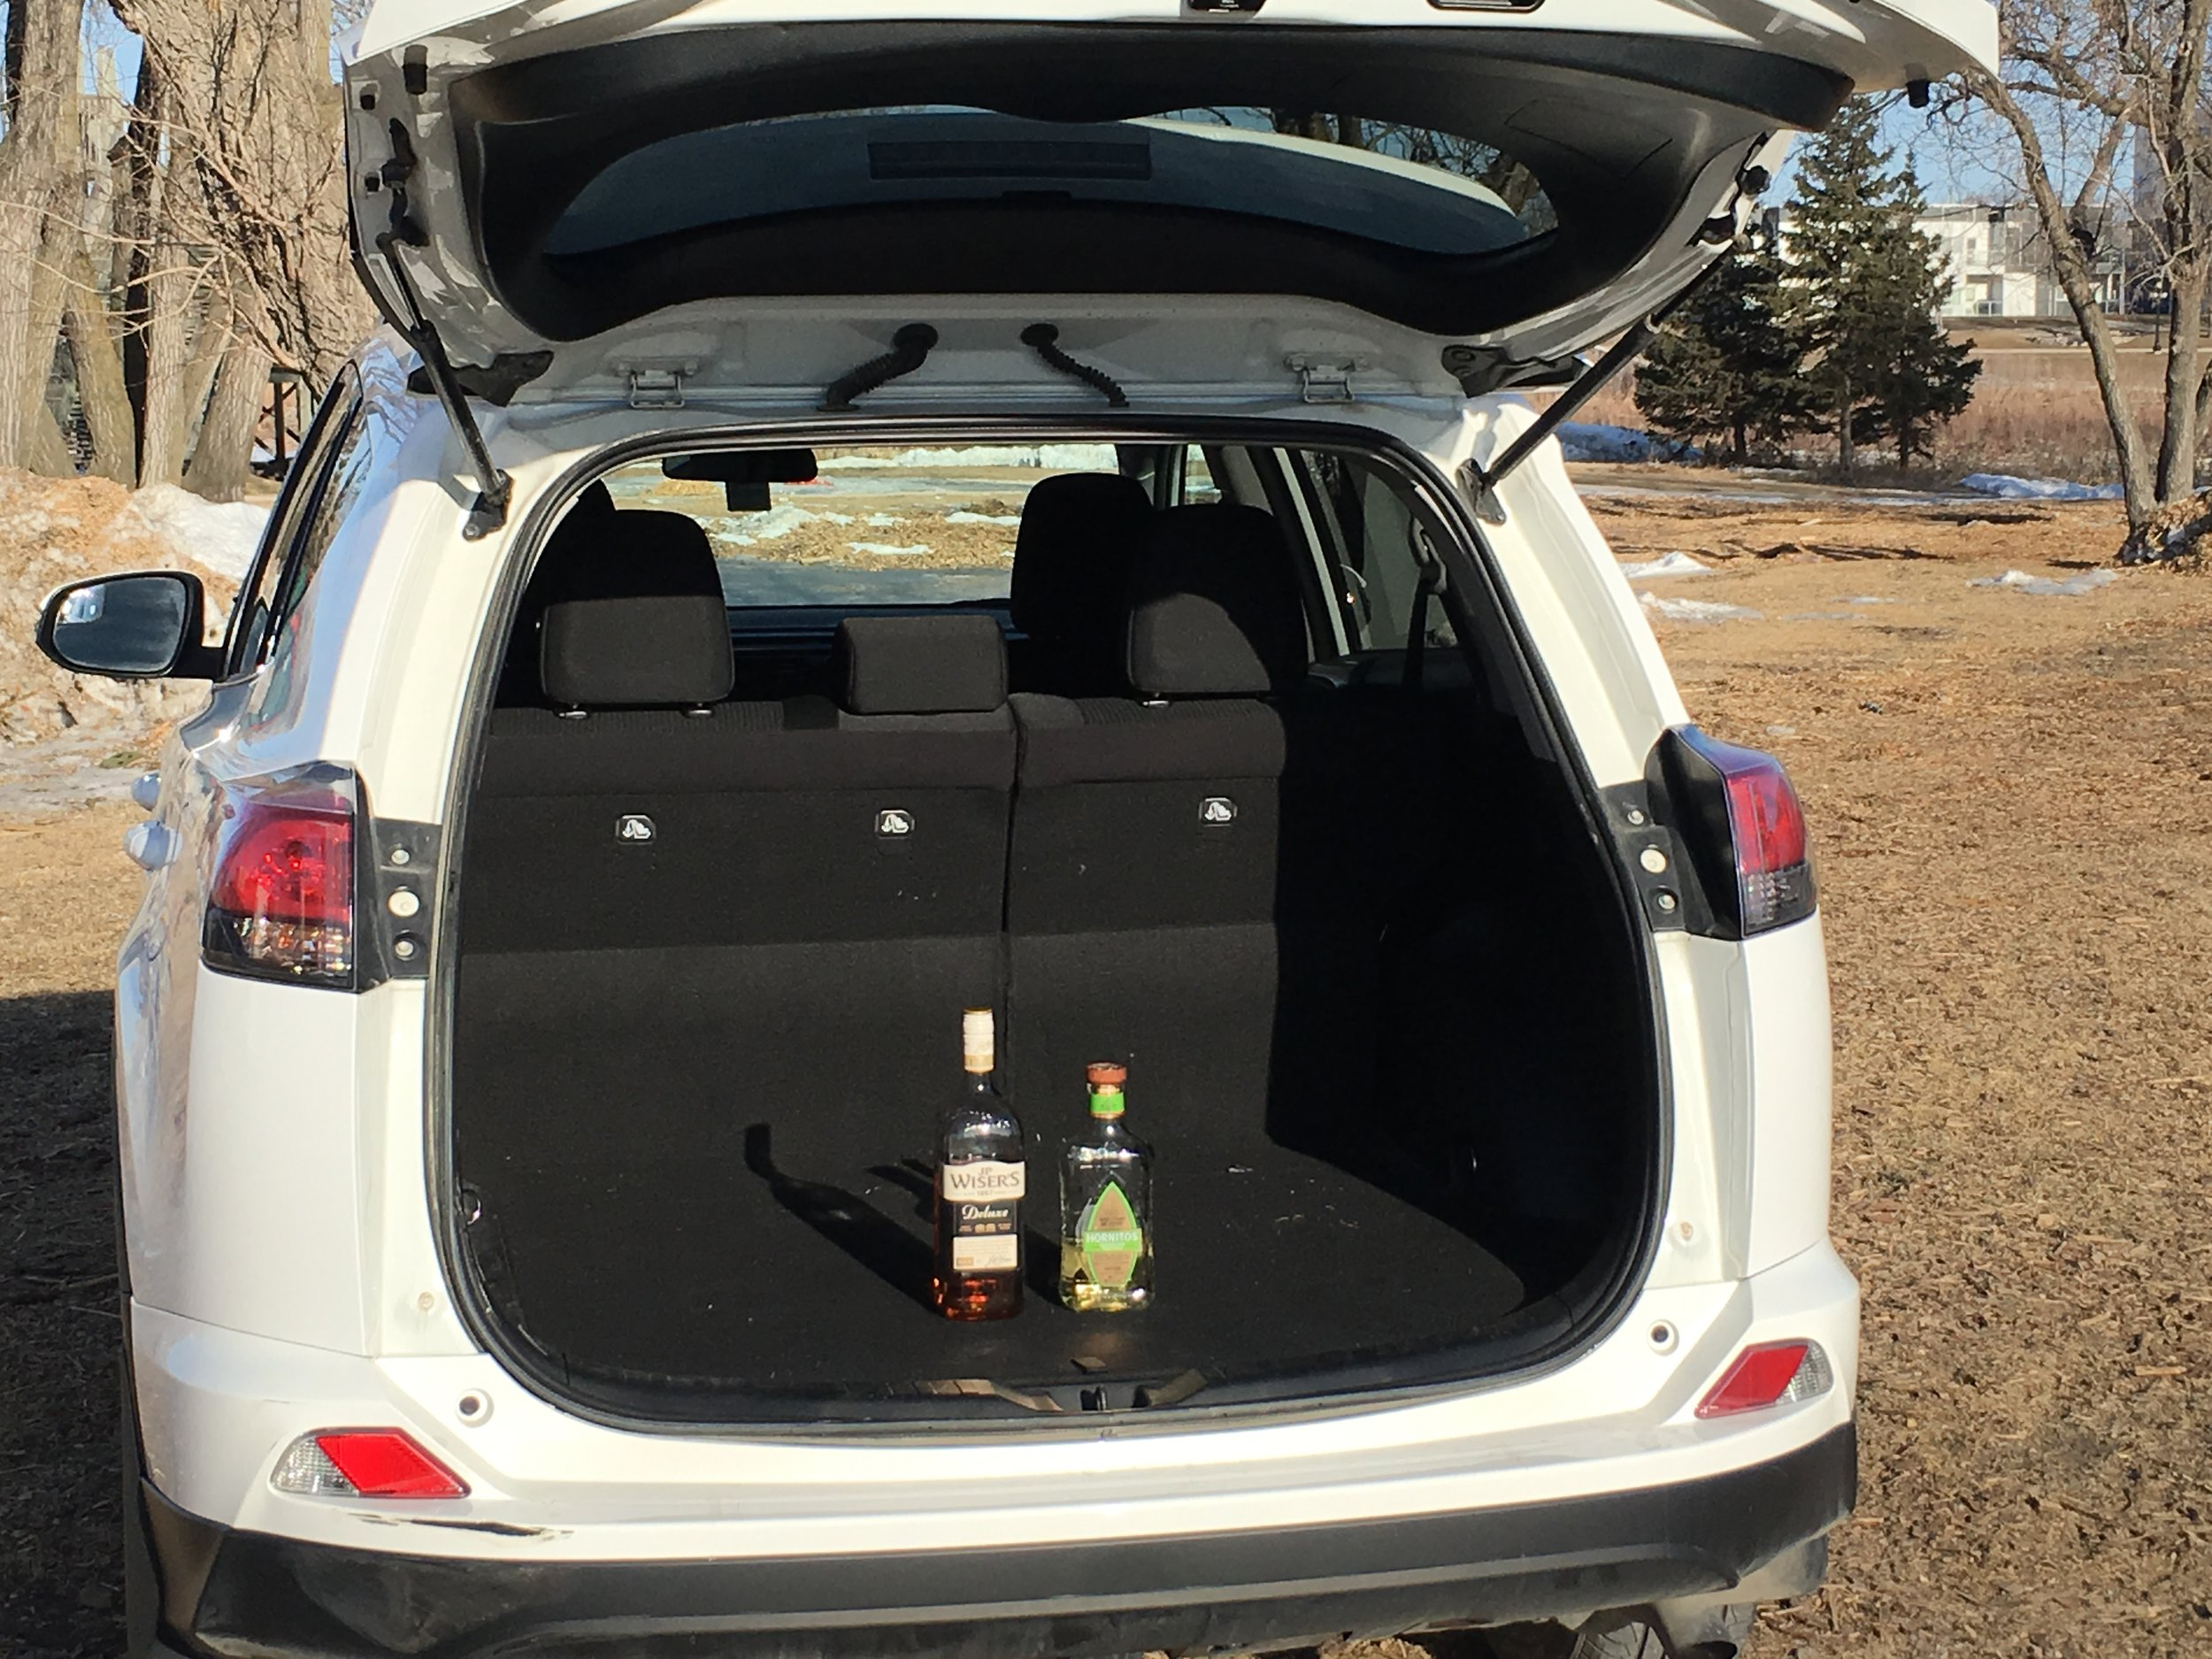 In a van or SUV - Store open liquor behind the last row of seats